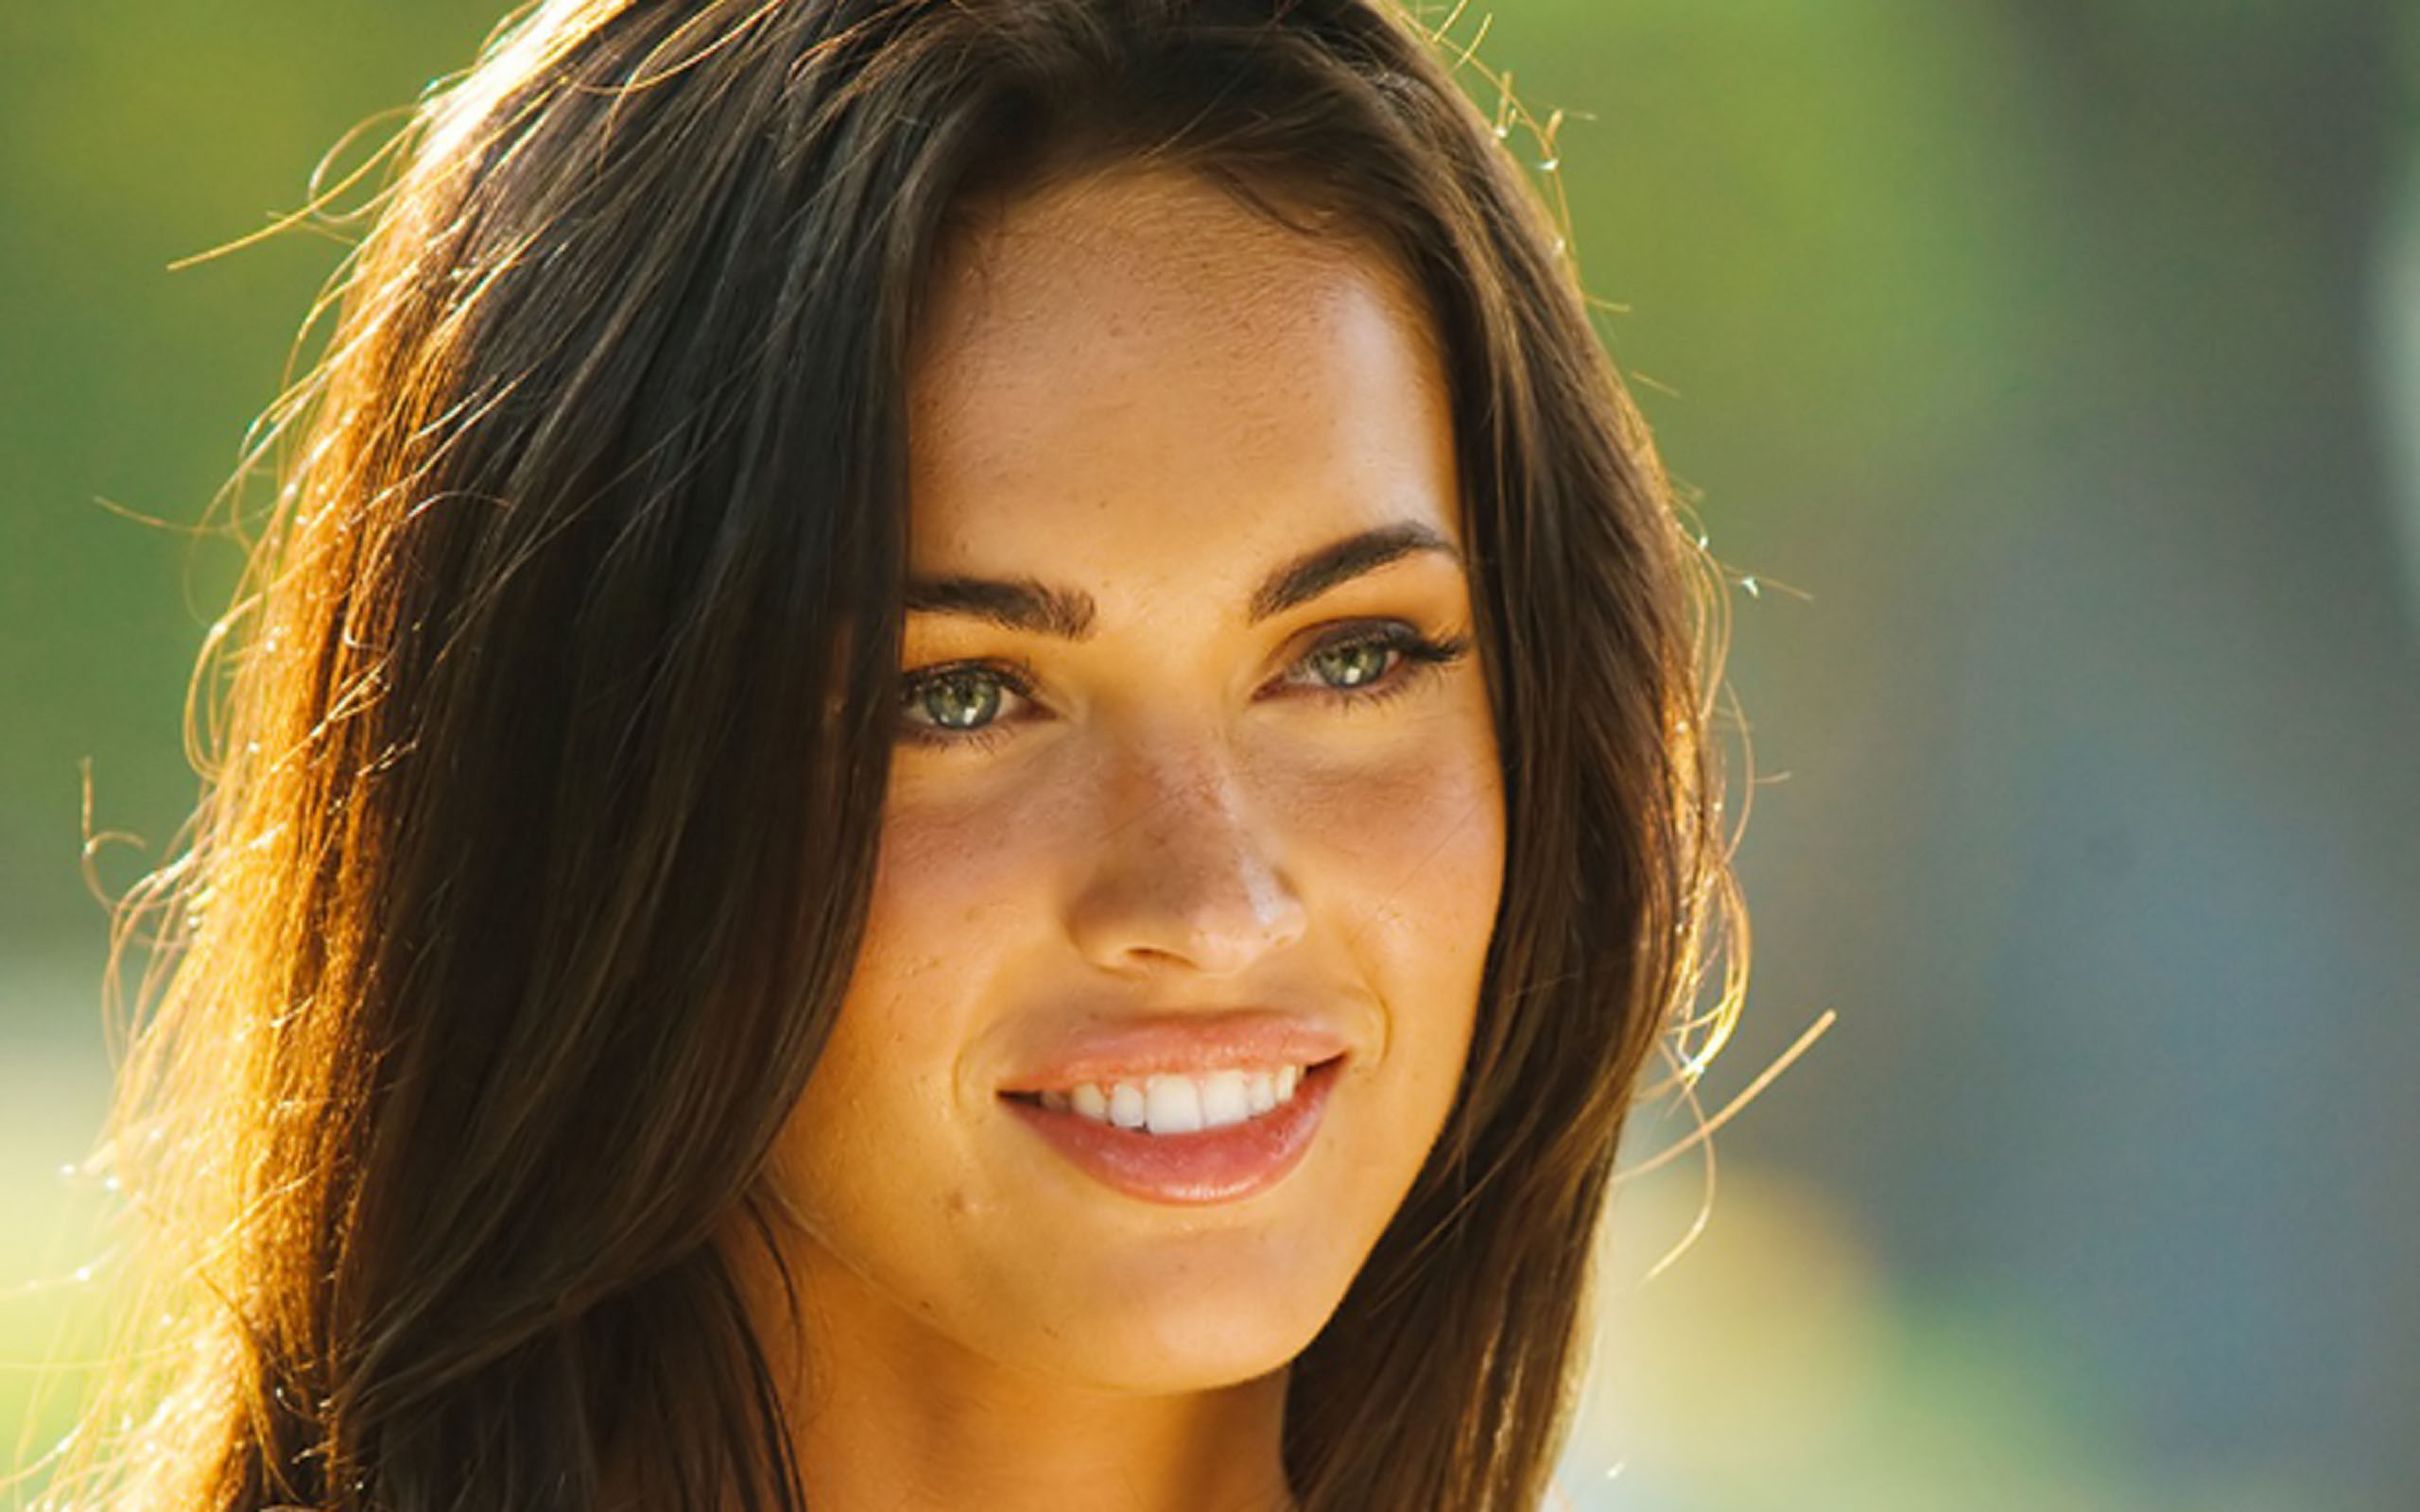 Cute Megan Fox Wallpaper 2560x1600 19162